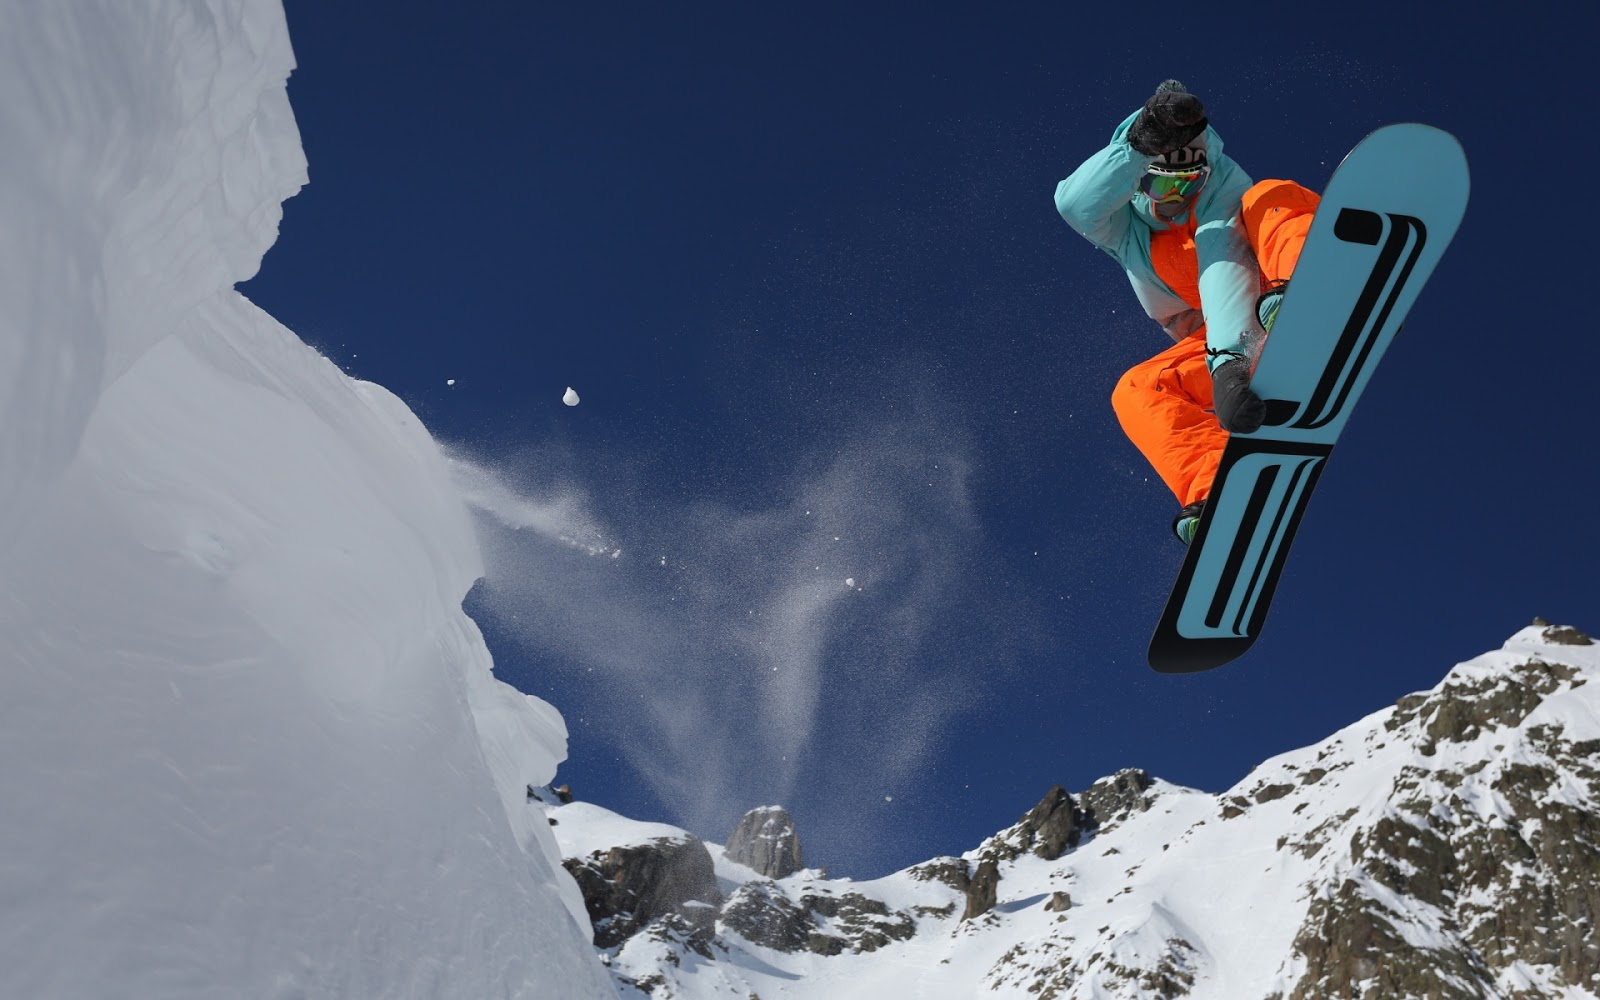 extreme snowboarding wallpapers - photo #3